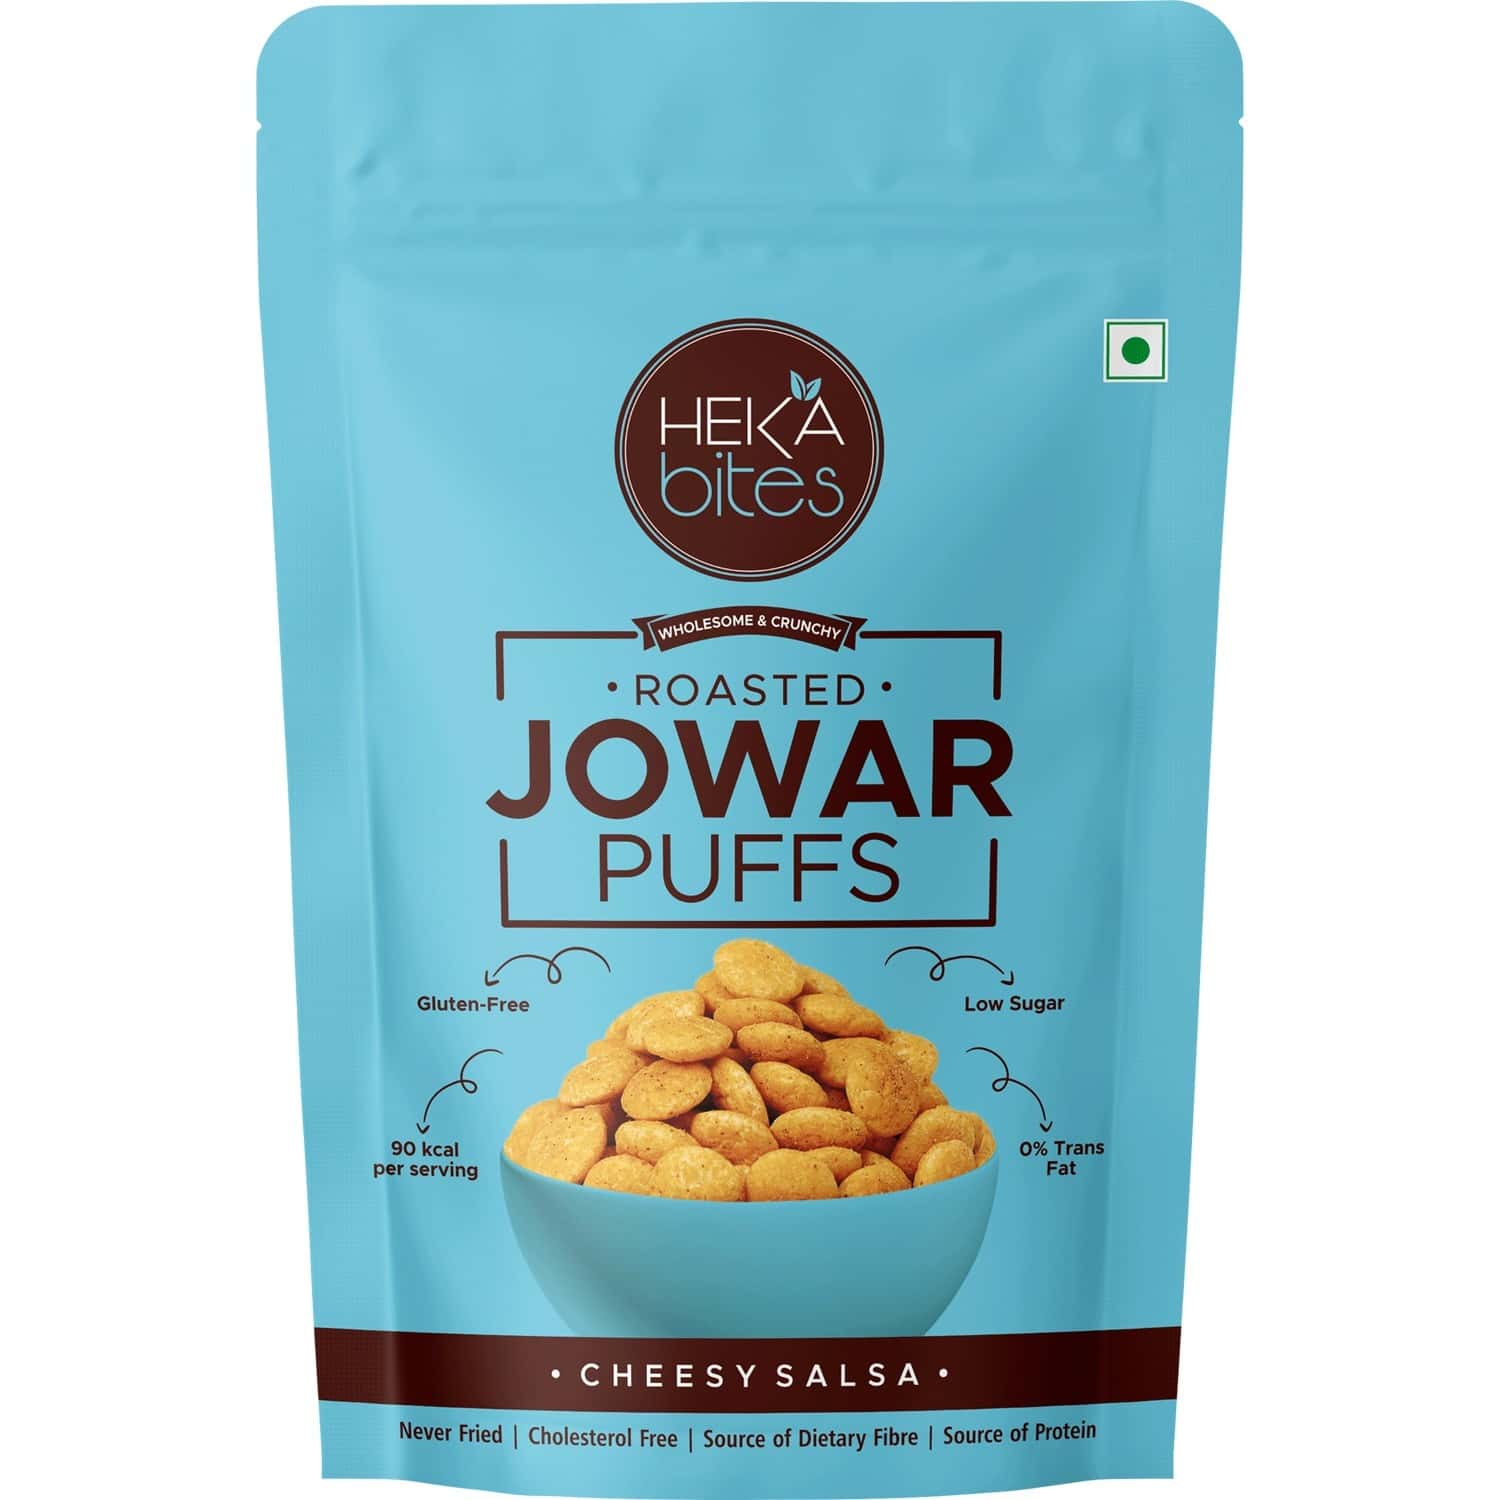 Heka Bites Roasted Jowar Puffs Cheesy Salsa - Pack Of 1 X40g |low Calorie & Healthy Snacks